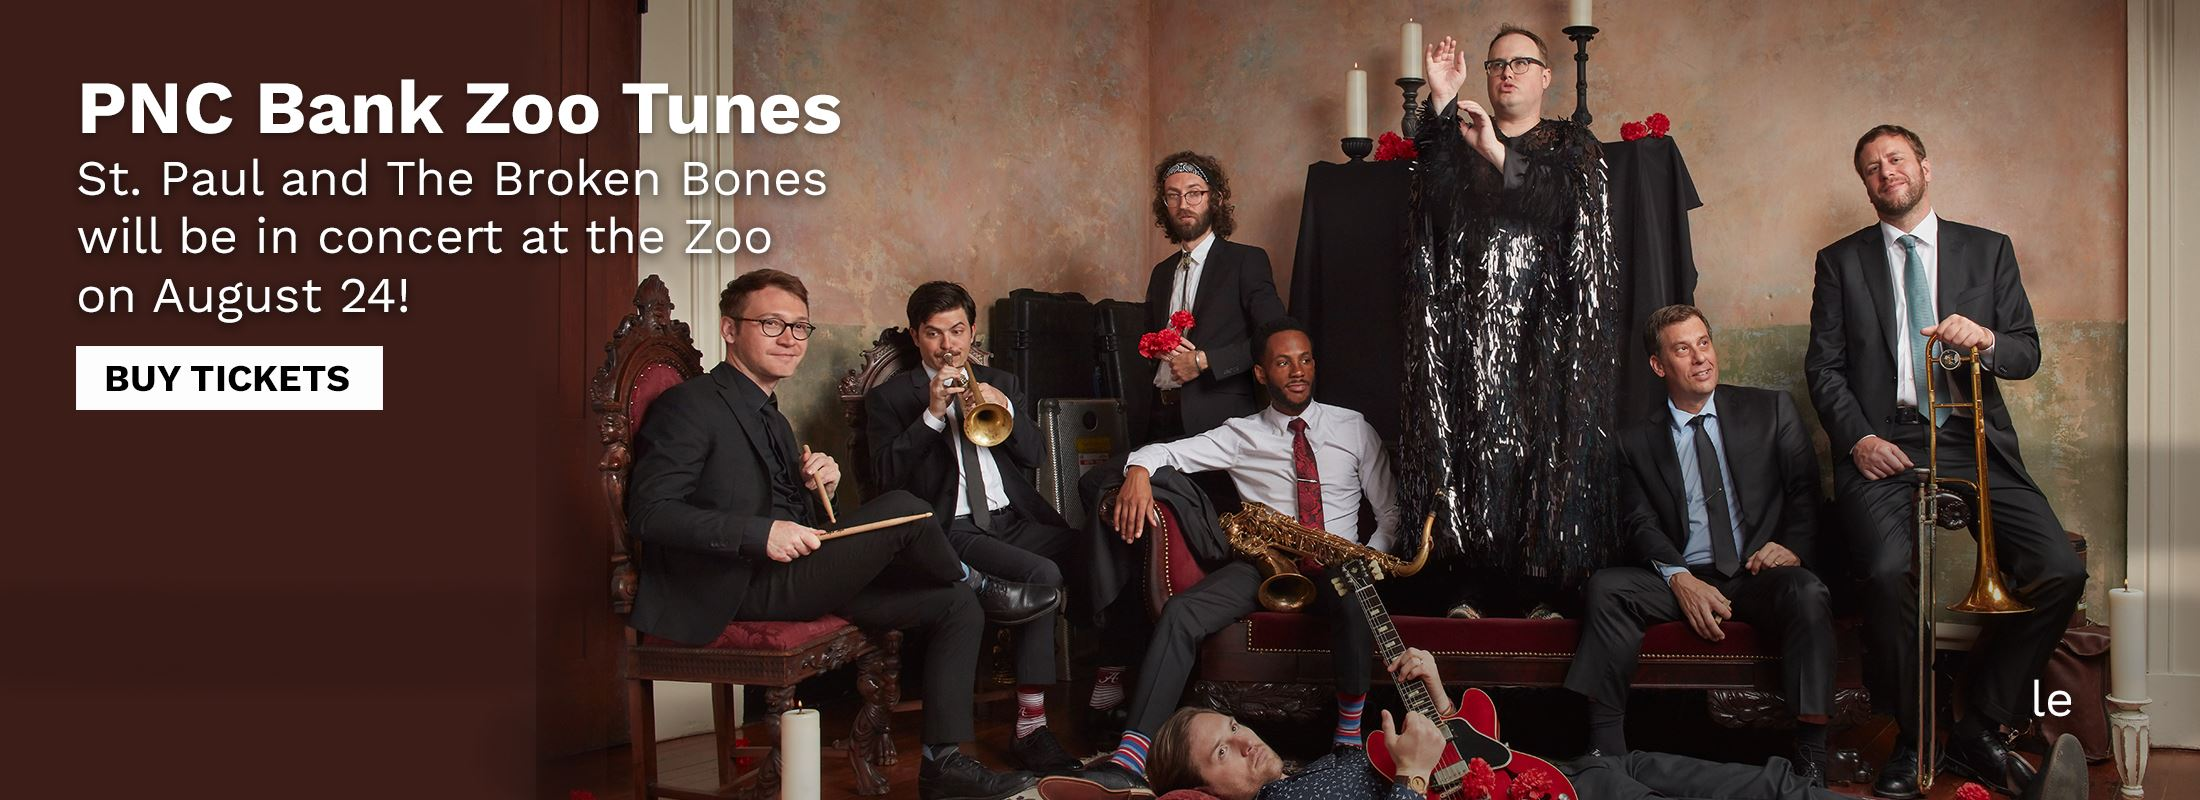 Photo of St. Paul and The Broken Bones. Purchase tickets to hear them at the Zoo on August 24.